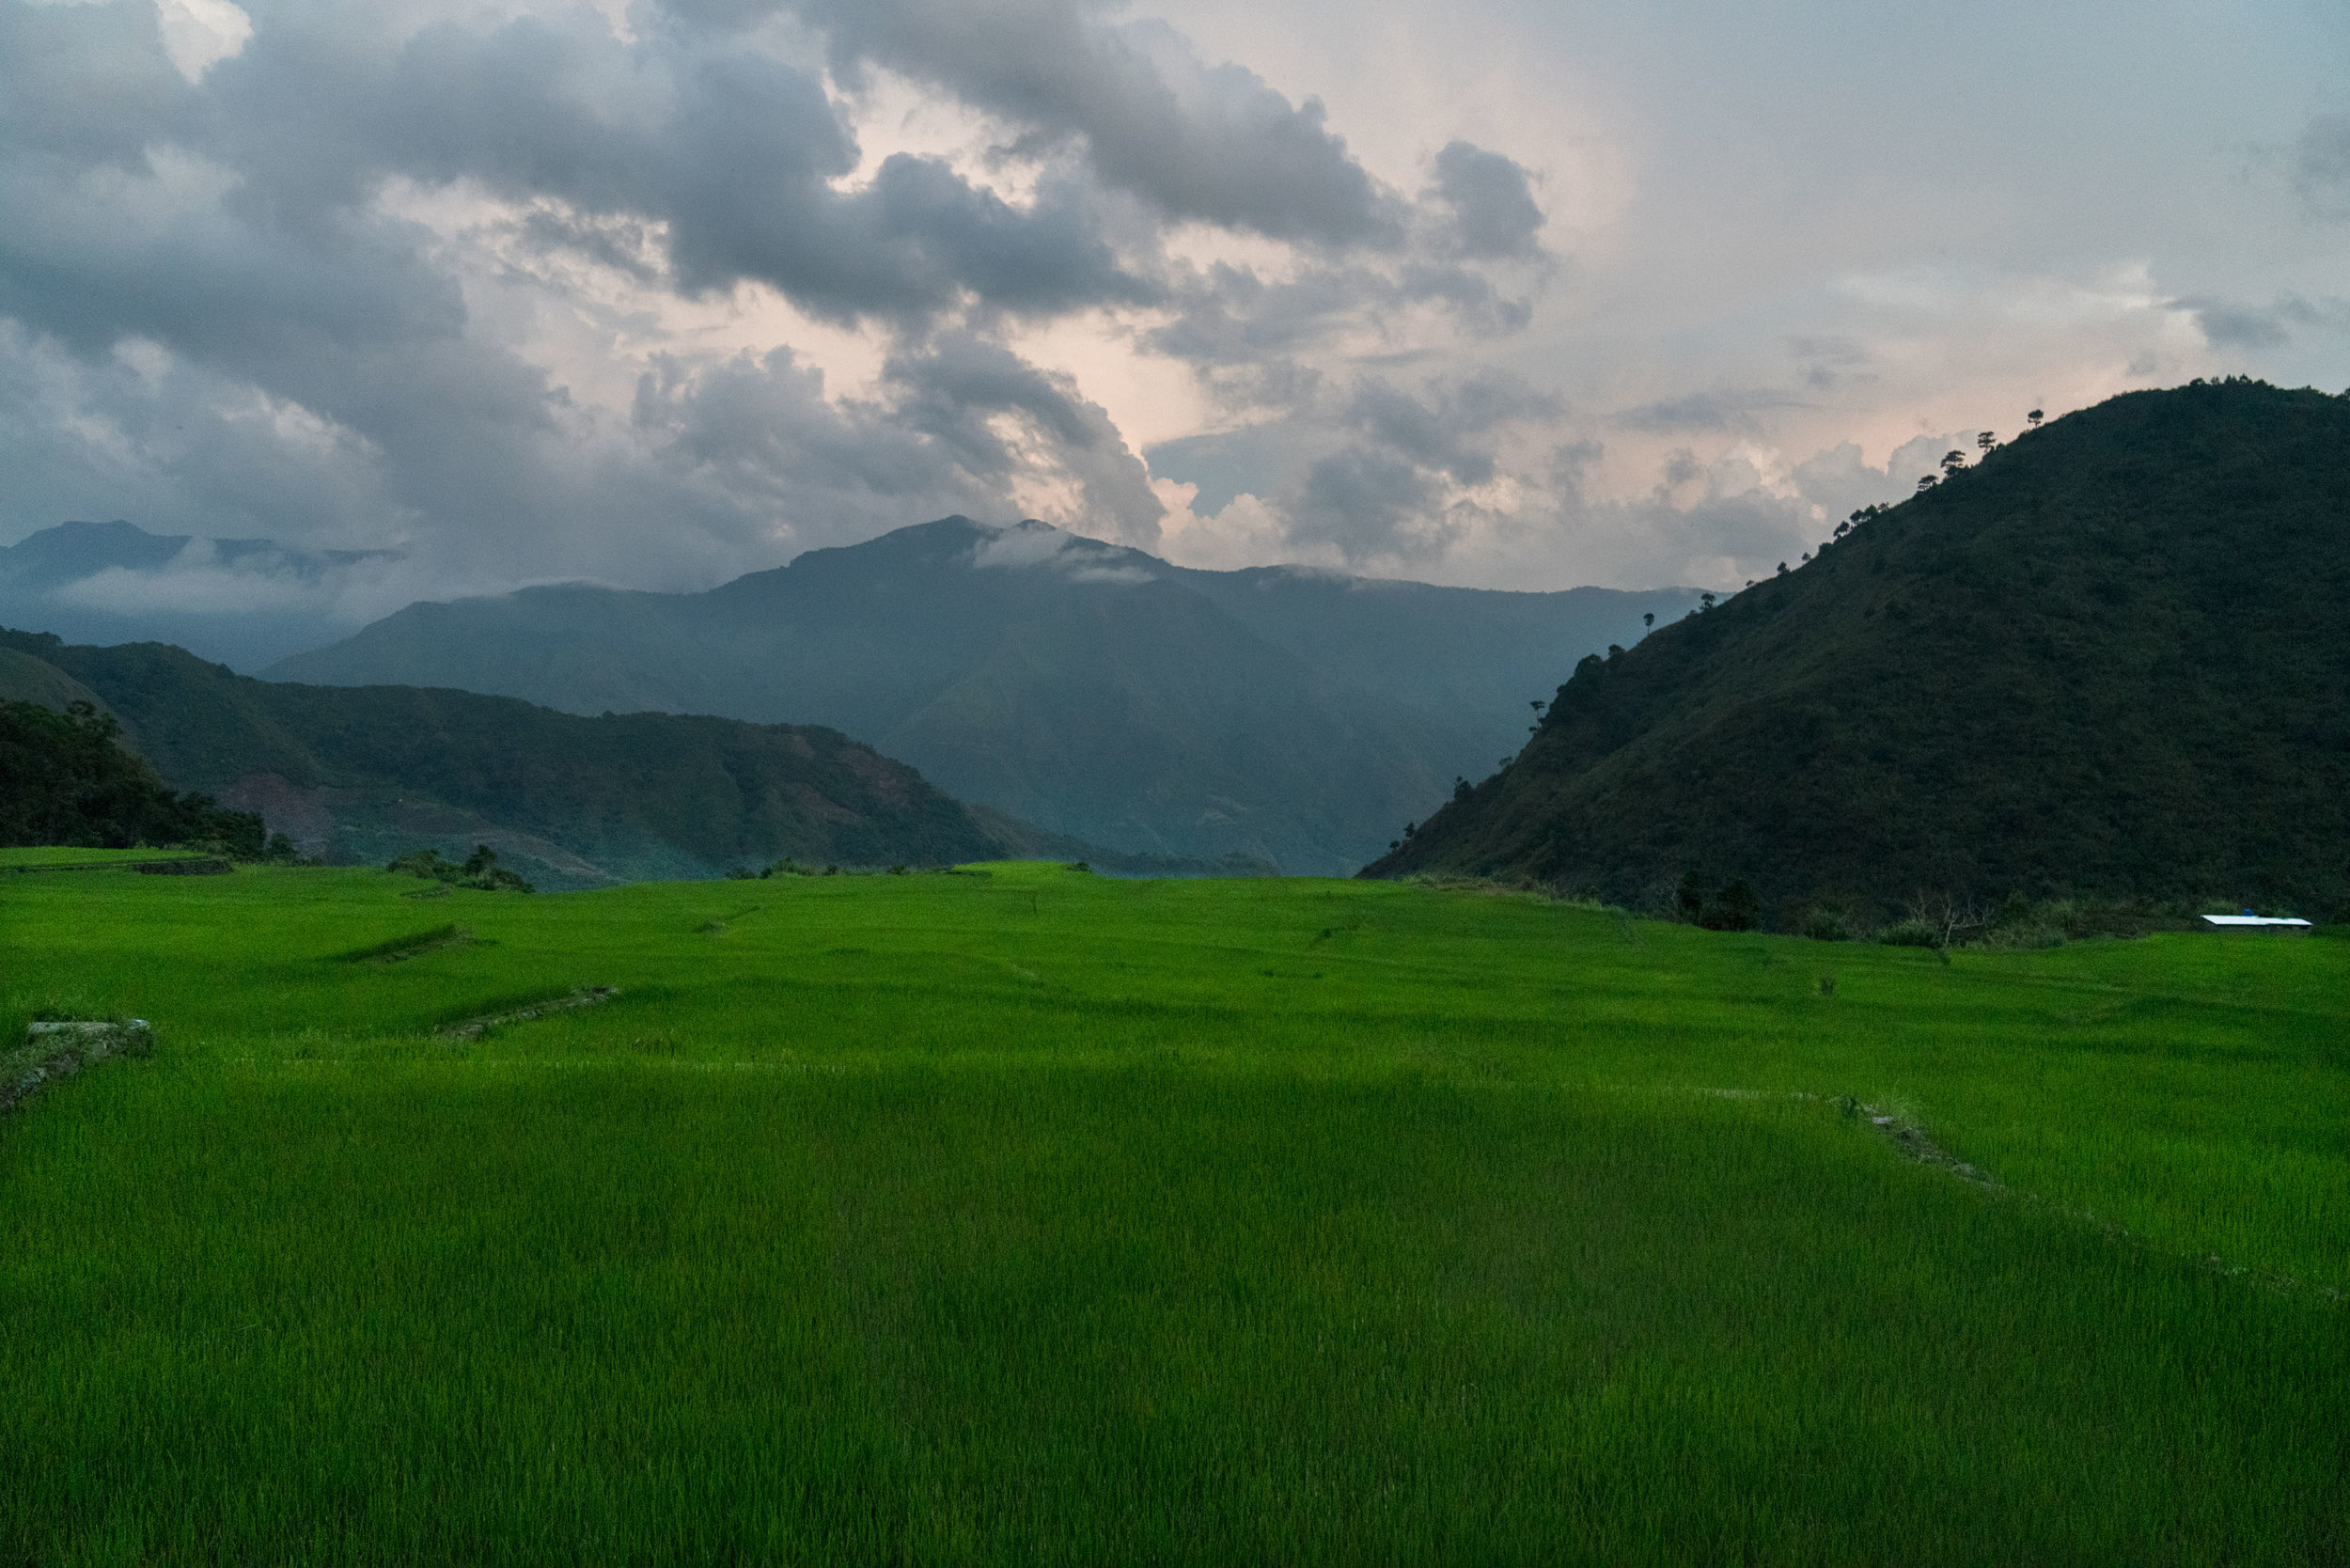 The rice fields take on an intense green at sunset